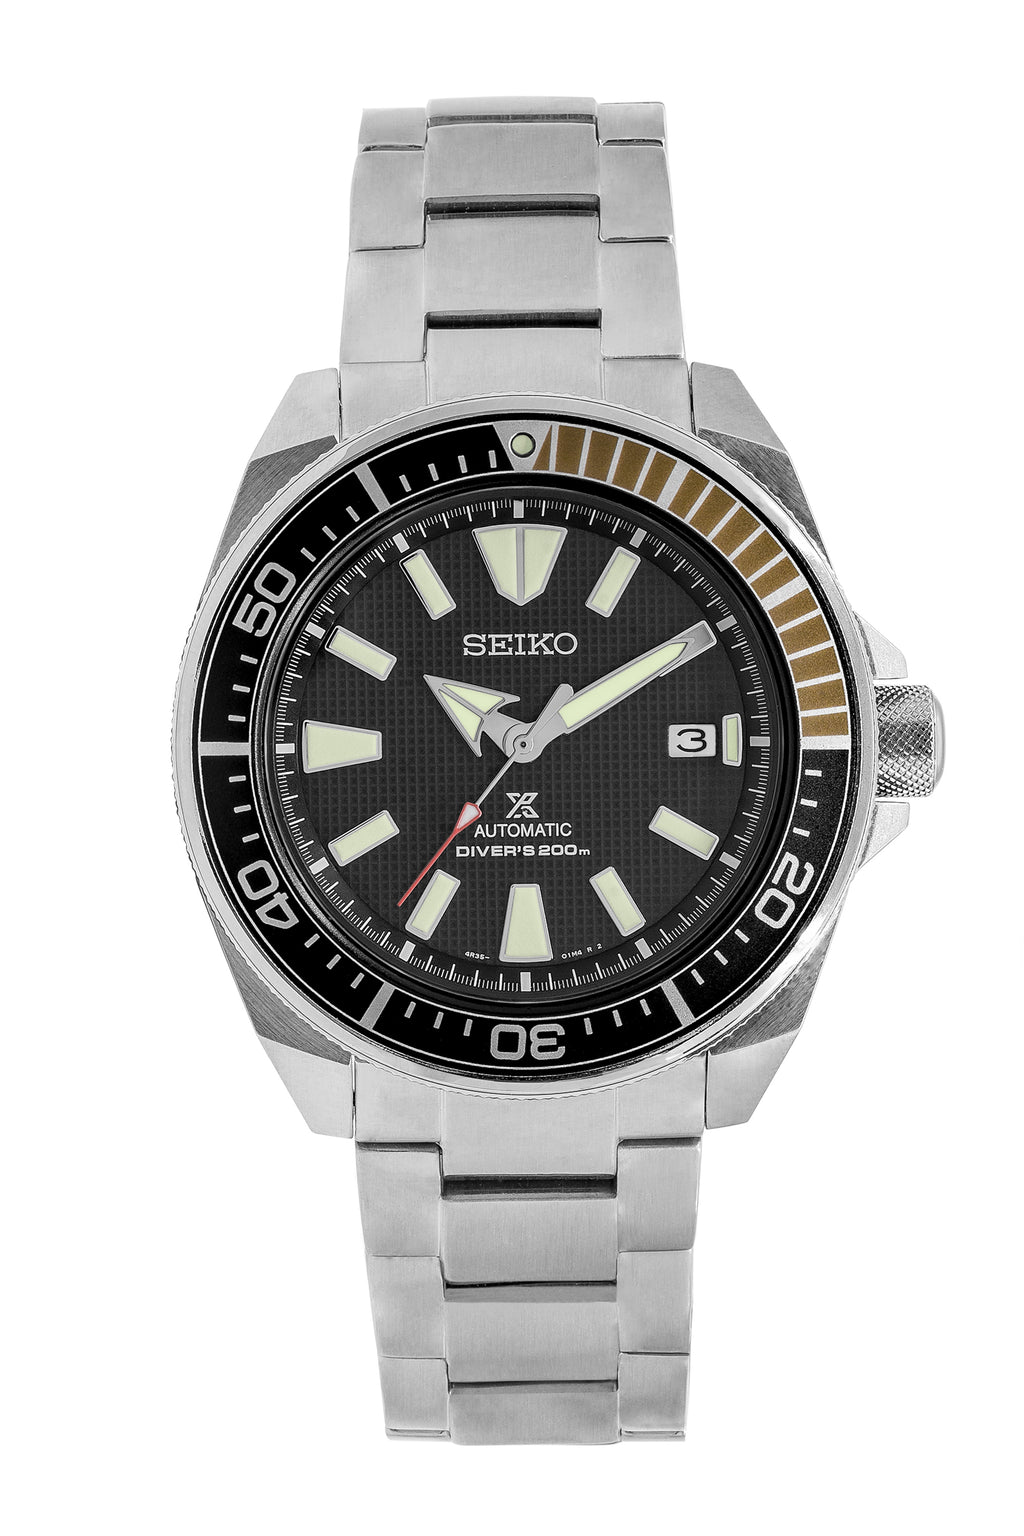 SEIKO Prospex Samurai Automatic Men's Diver Watch - SRPB51K1 – Black Dial